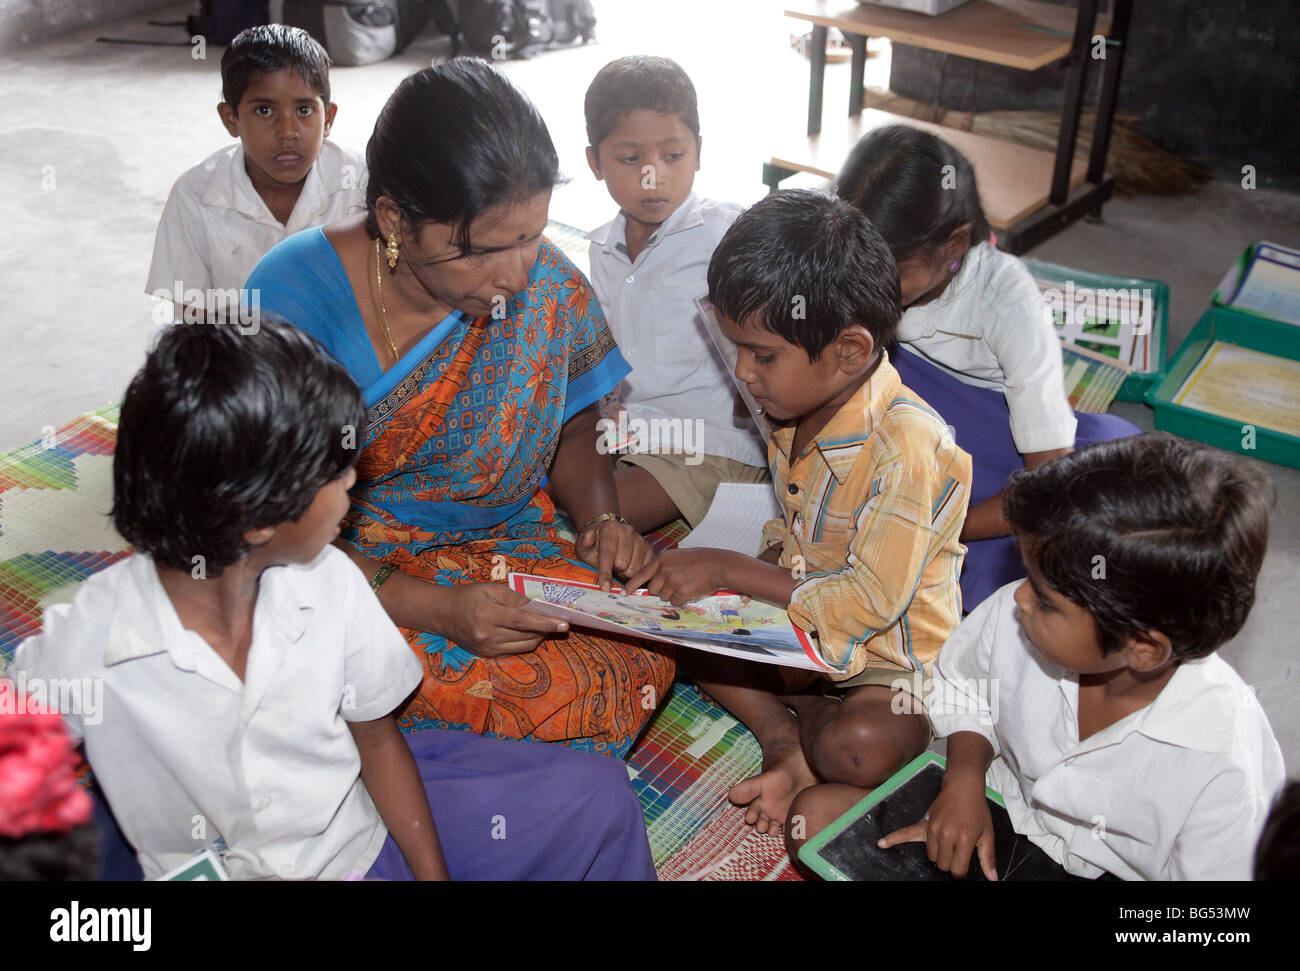 Teacher and pupils in a classroom in a school in Tamil Nadu, India - Stock Image